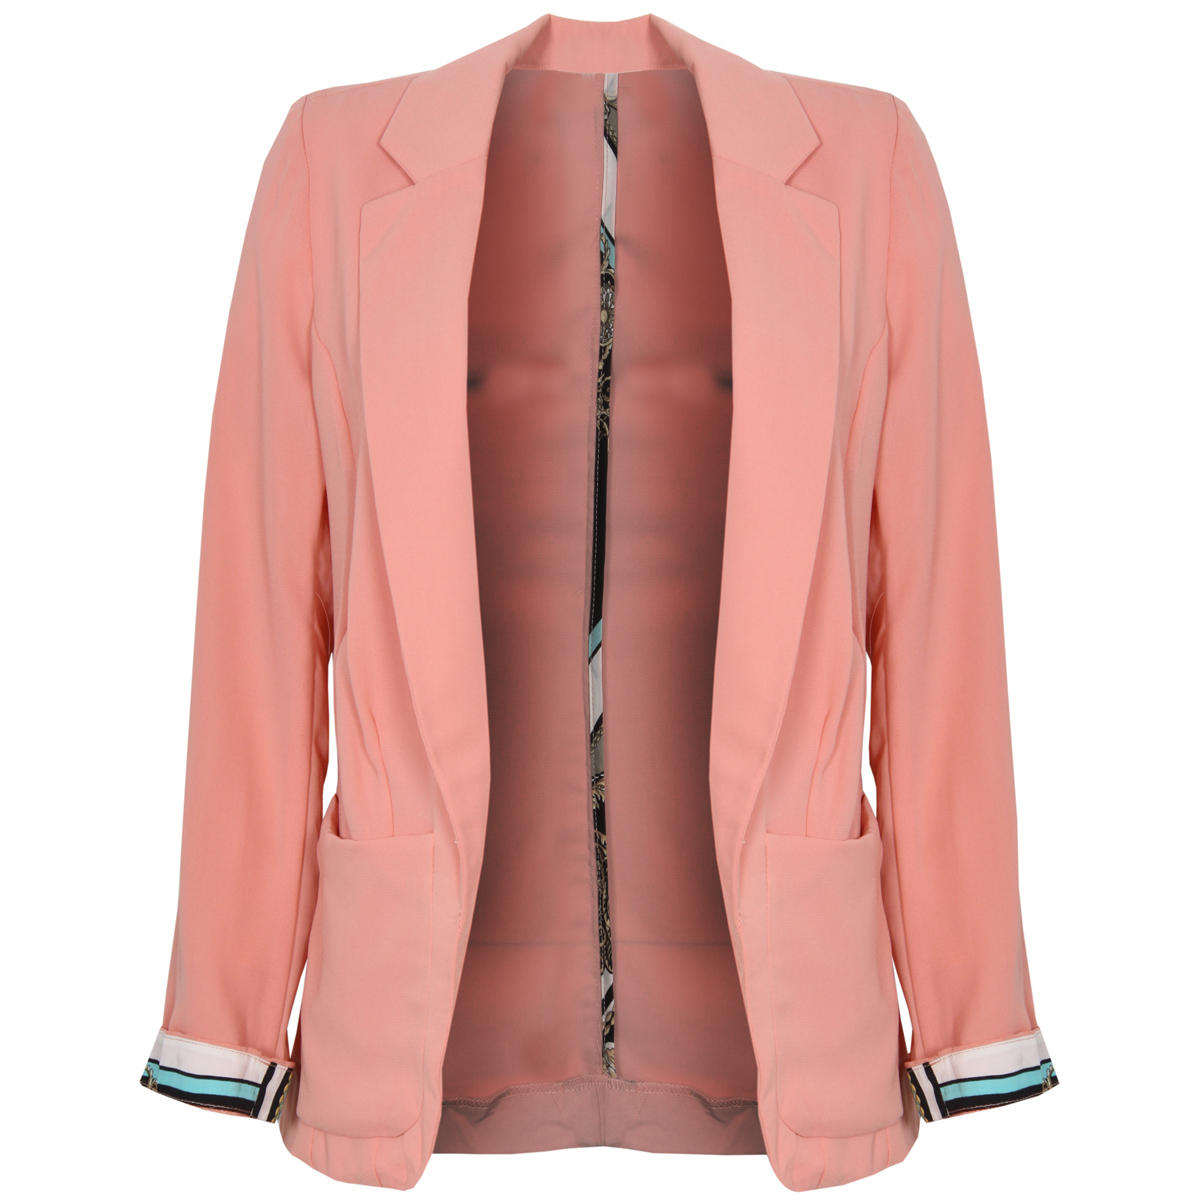 Lighweight Coral Blazer With Scarf Print Cuffs Preview